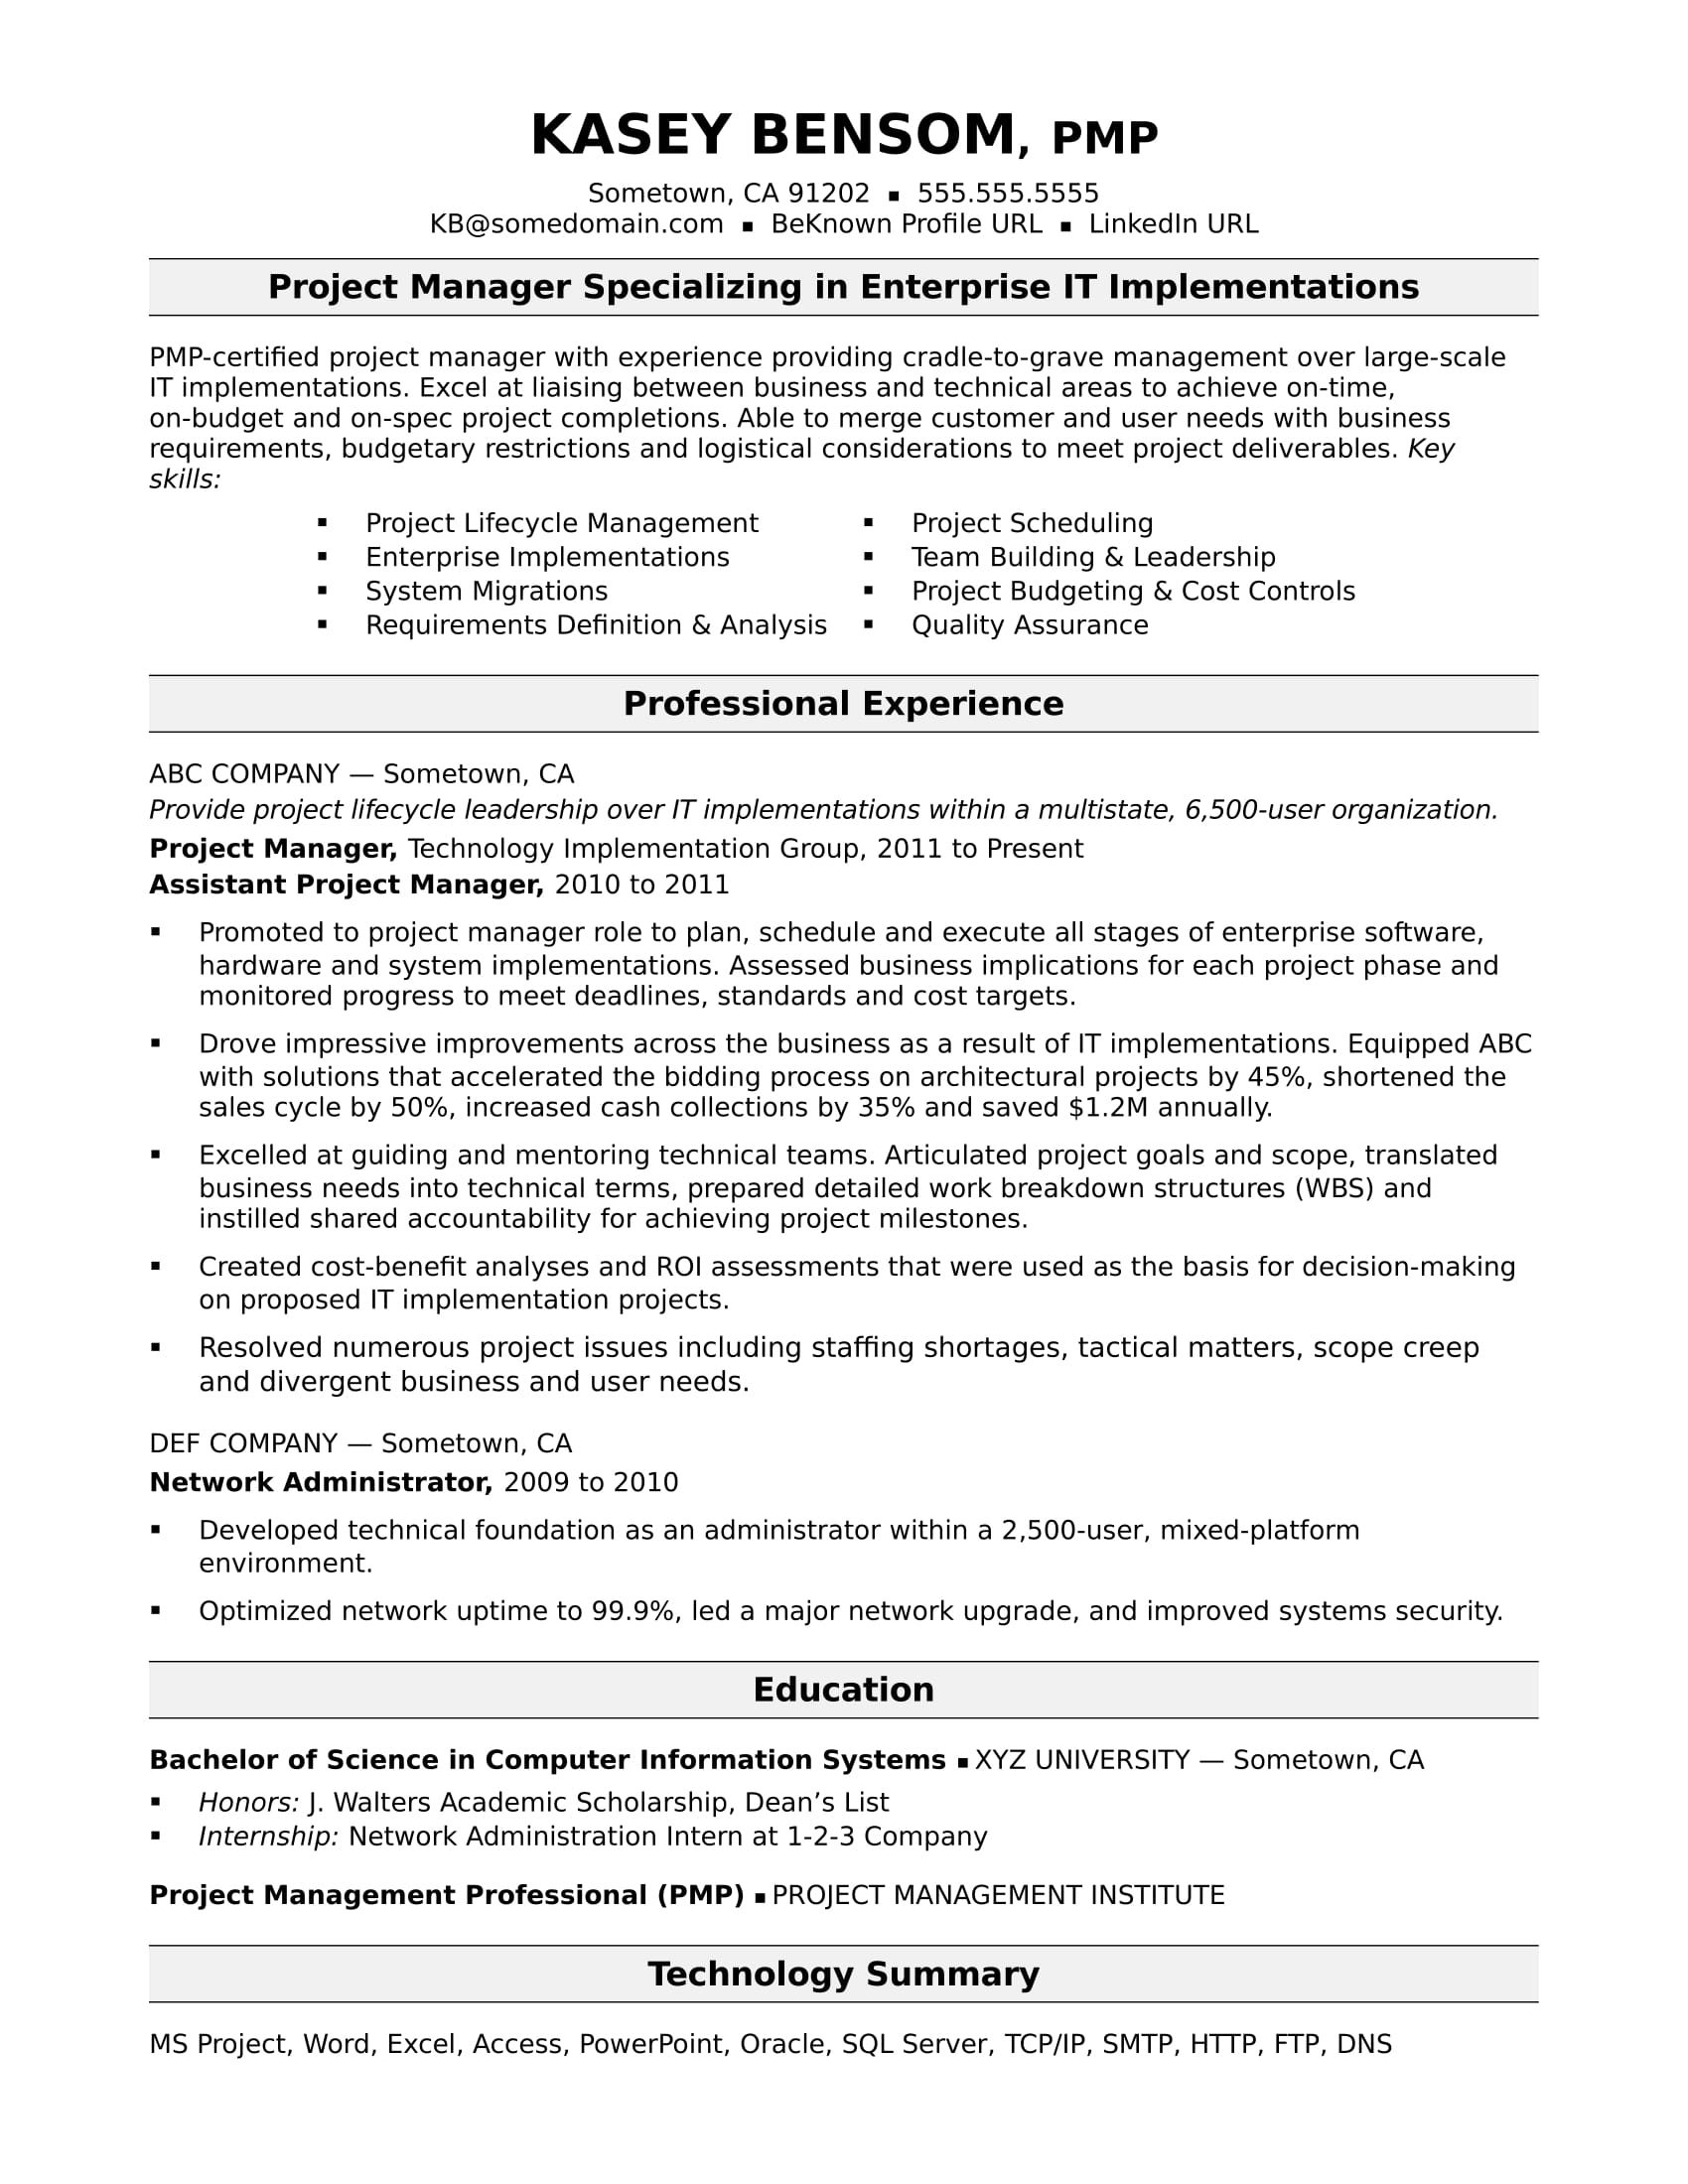 sample resume for midlevel it project manager monster technical examples ticketing Resume Technical Project Manager Resume Examples